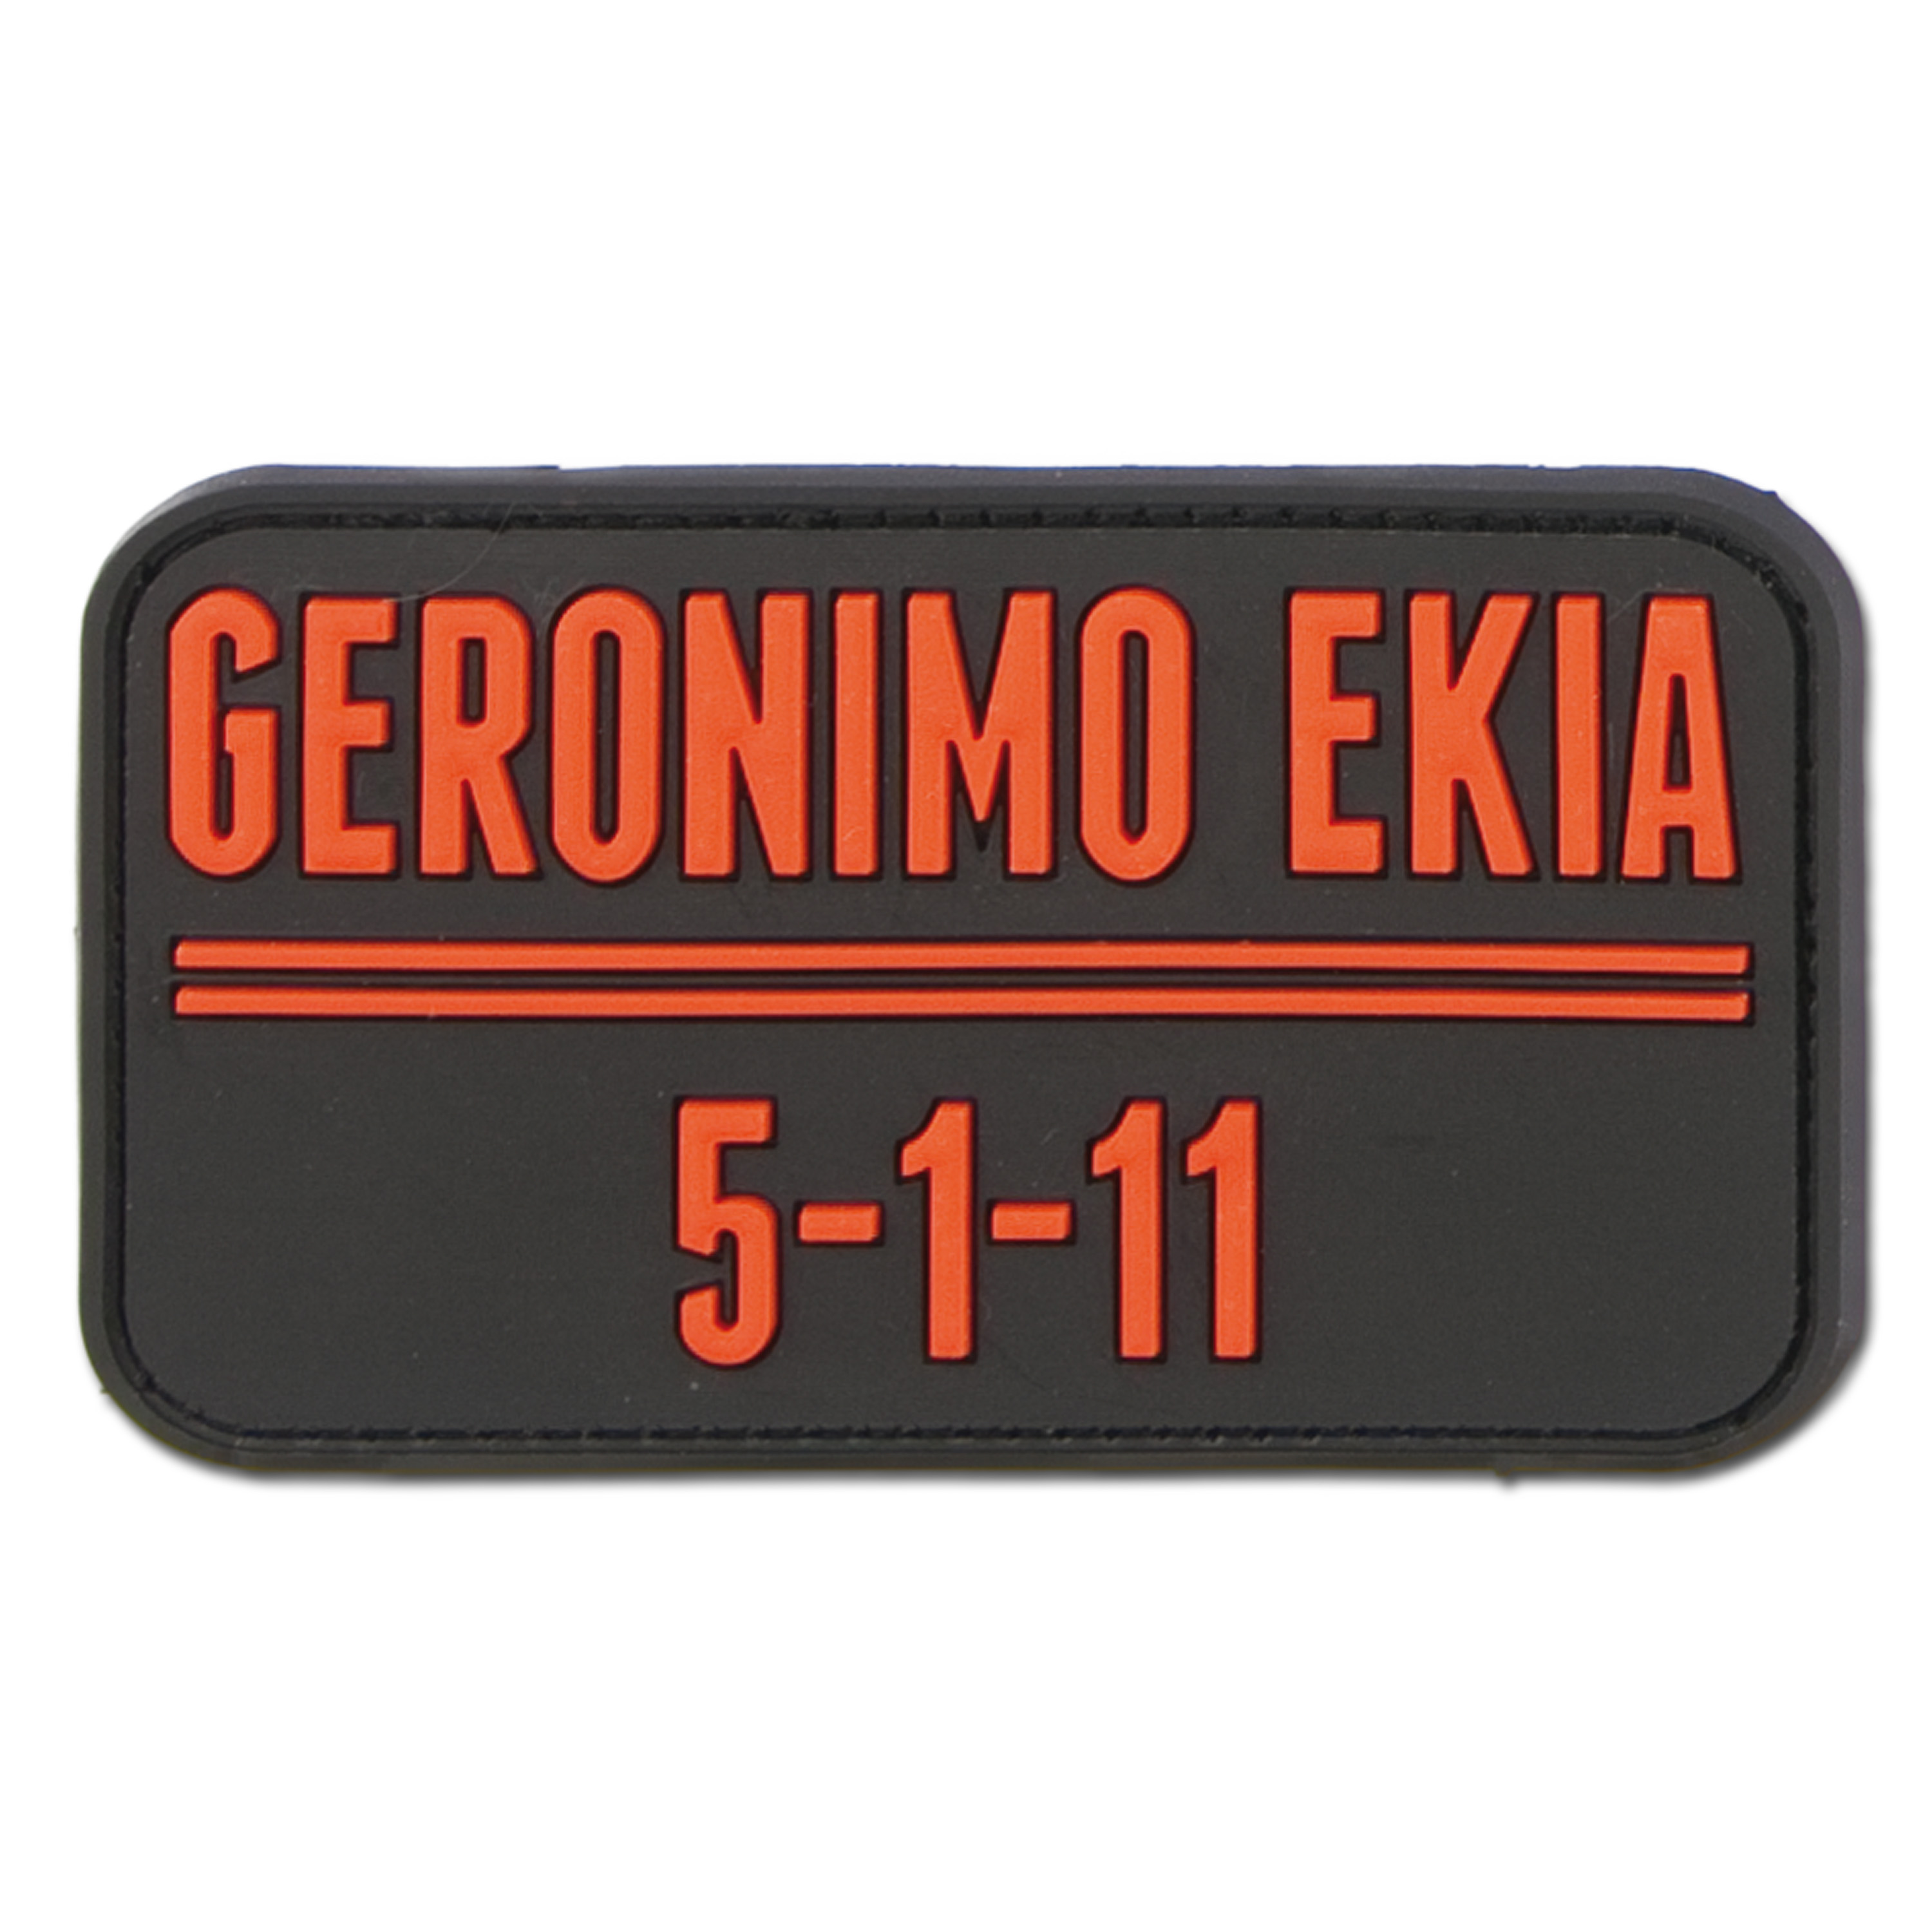 3D-Patch Geronimo Ekia black/red